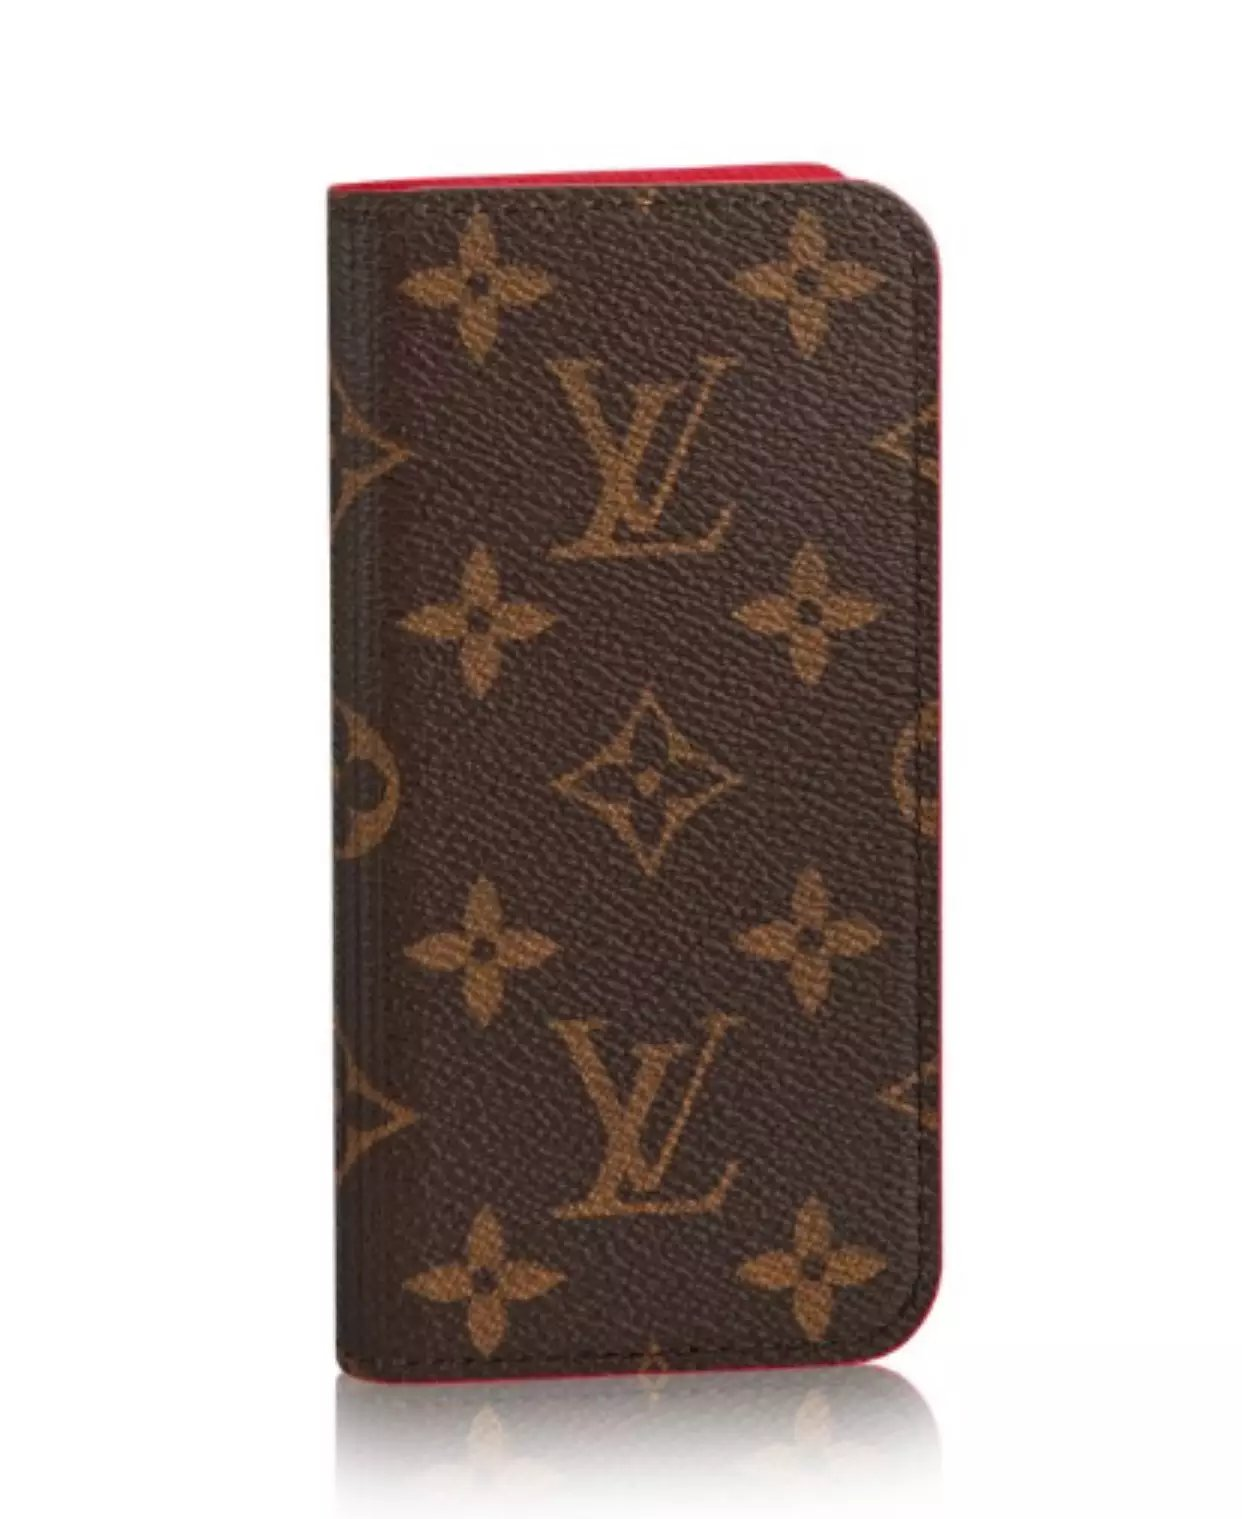 iphone case erstellen iphone hülle mit foto bedrucken Louis Vuitton iphone 8 hüllen tasche für iphone 8 iphone lederhülle iphone s 8 hülle iphone sporthülle apple iphone schutzhülle iphone 8 a8 braun